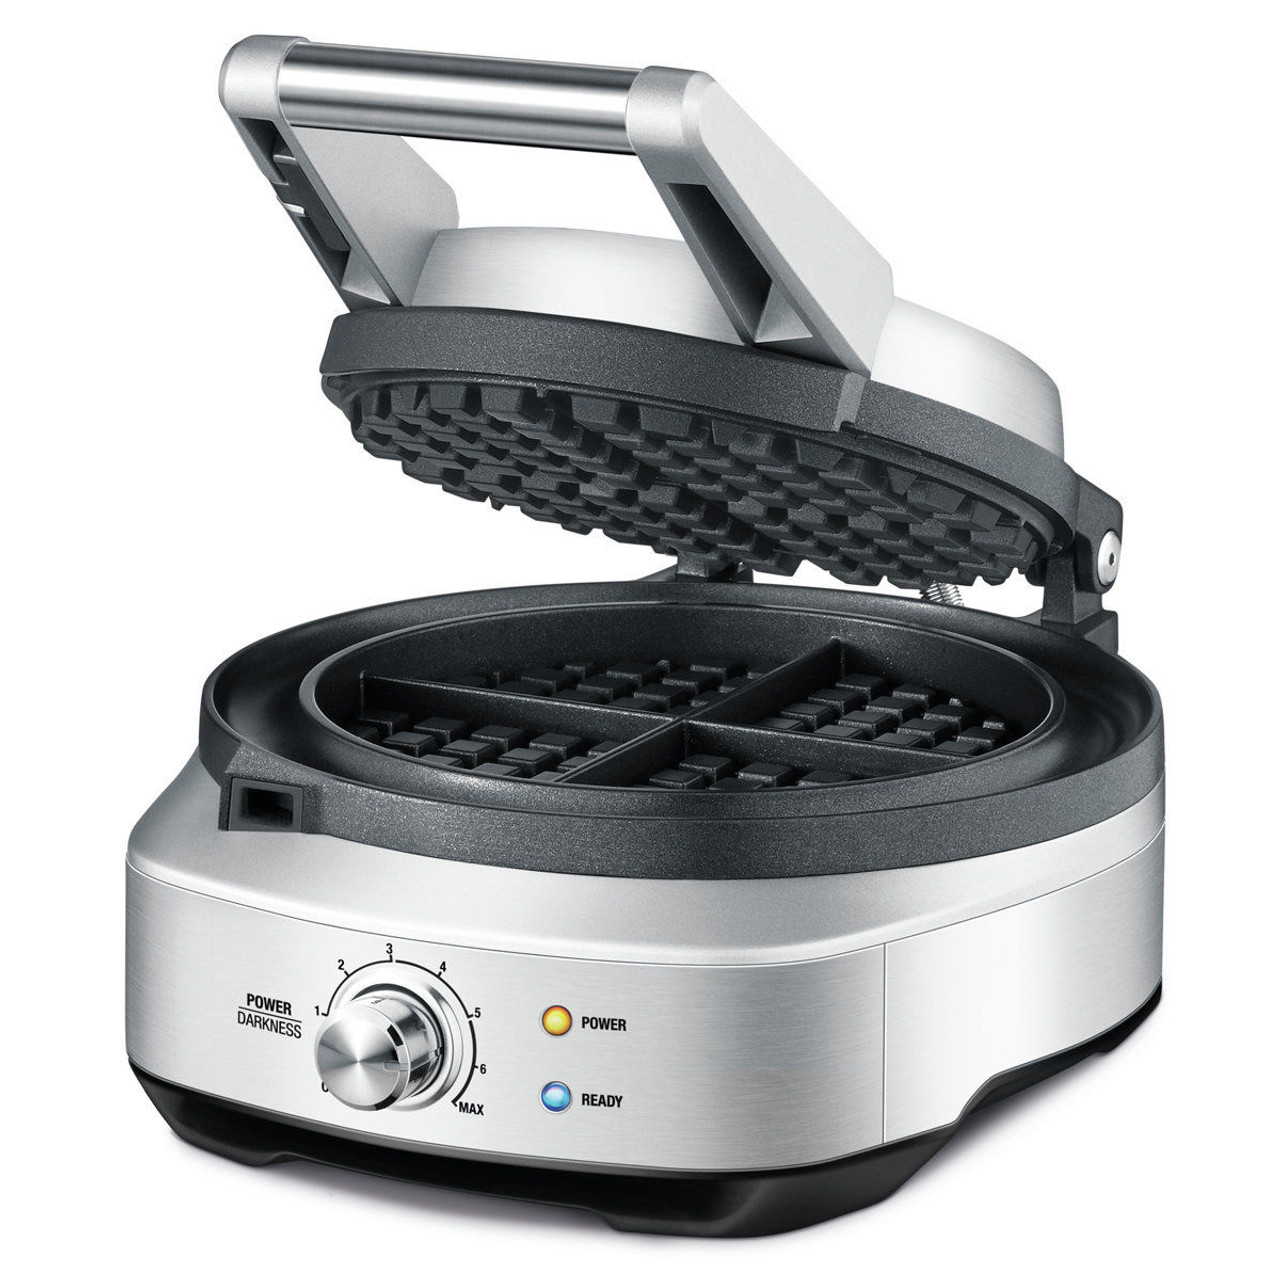 Breville BWM520BSS the No-Mess Waffle™ 4 Slice Waffle Maker